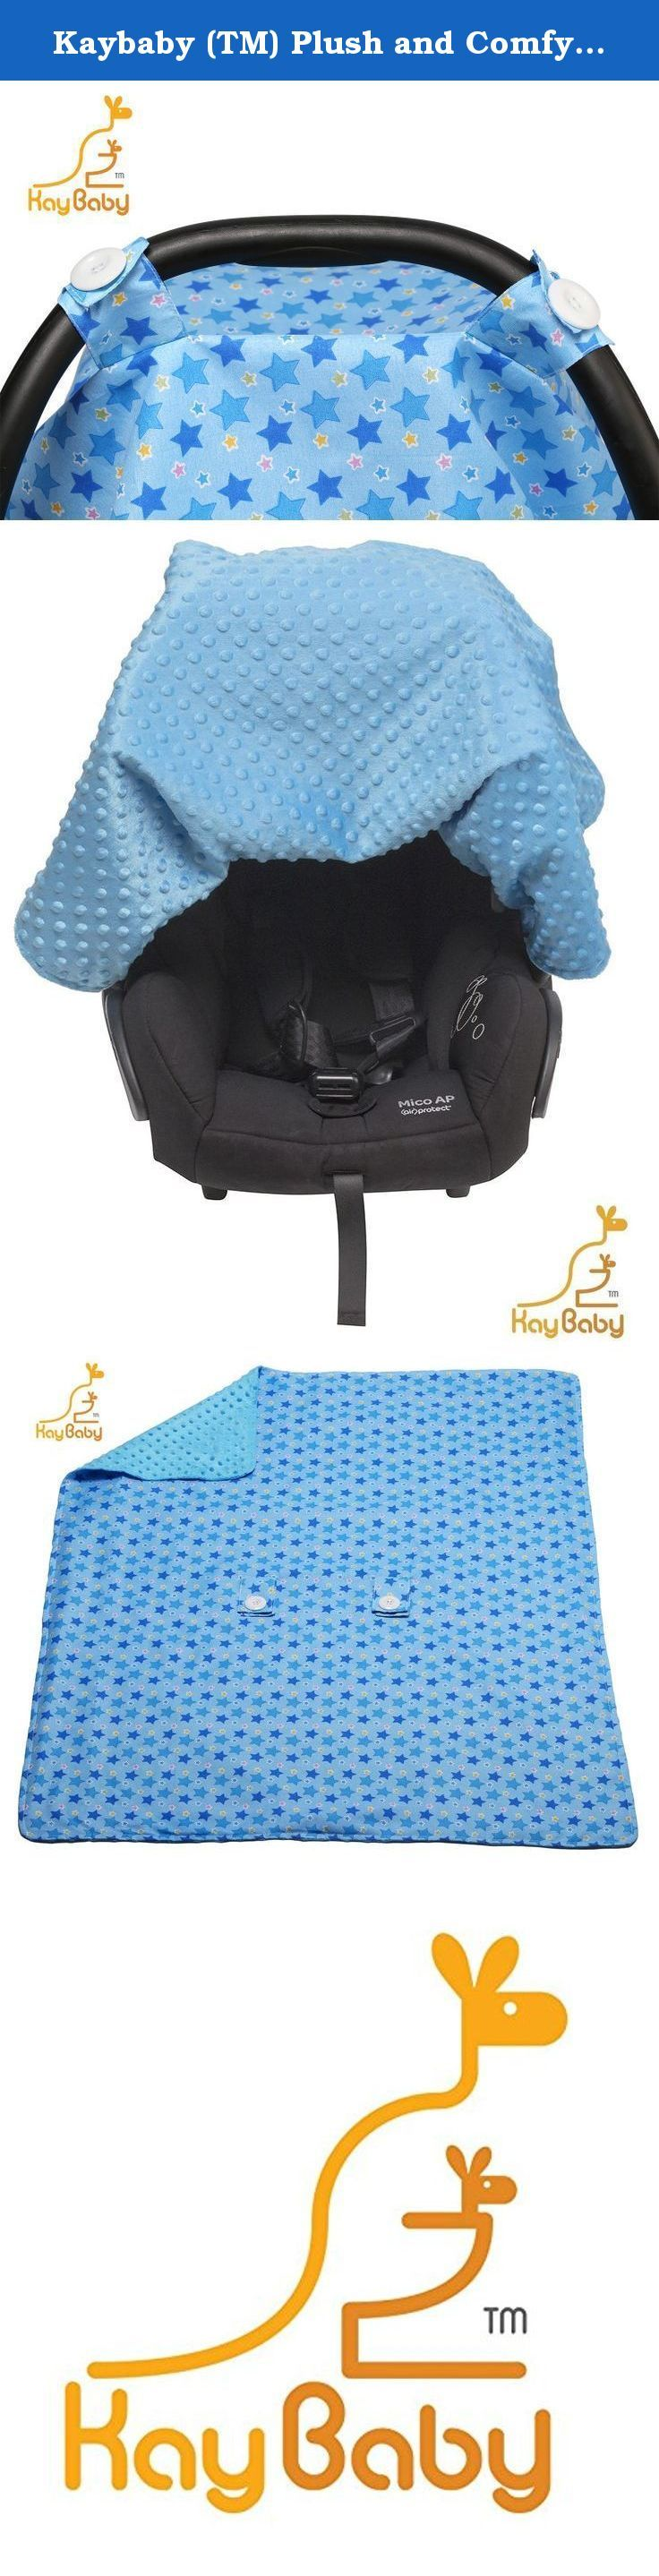 """Kaybaby (TM) Plush and Comfy Carseat Canopy. 35""""x45"""" Strong and Lightweight. Extra Plush Car Seat Canopy. Coziest Carseat Cover. 3 in 1 - Great for Nursing Cover and Baby Blanket (blue). KaybabyTM Plush and Comfy Car Seat Cover Time for your baby's first trip into the big, bad world, which means you need to be in Momma Bear mode and ensure he/she is protected properly! This infant car seat cover is just what you need to guarantee your little angel is safe and sound . The canopy is…"""